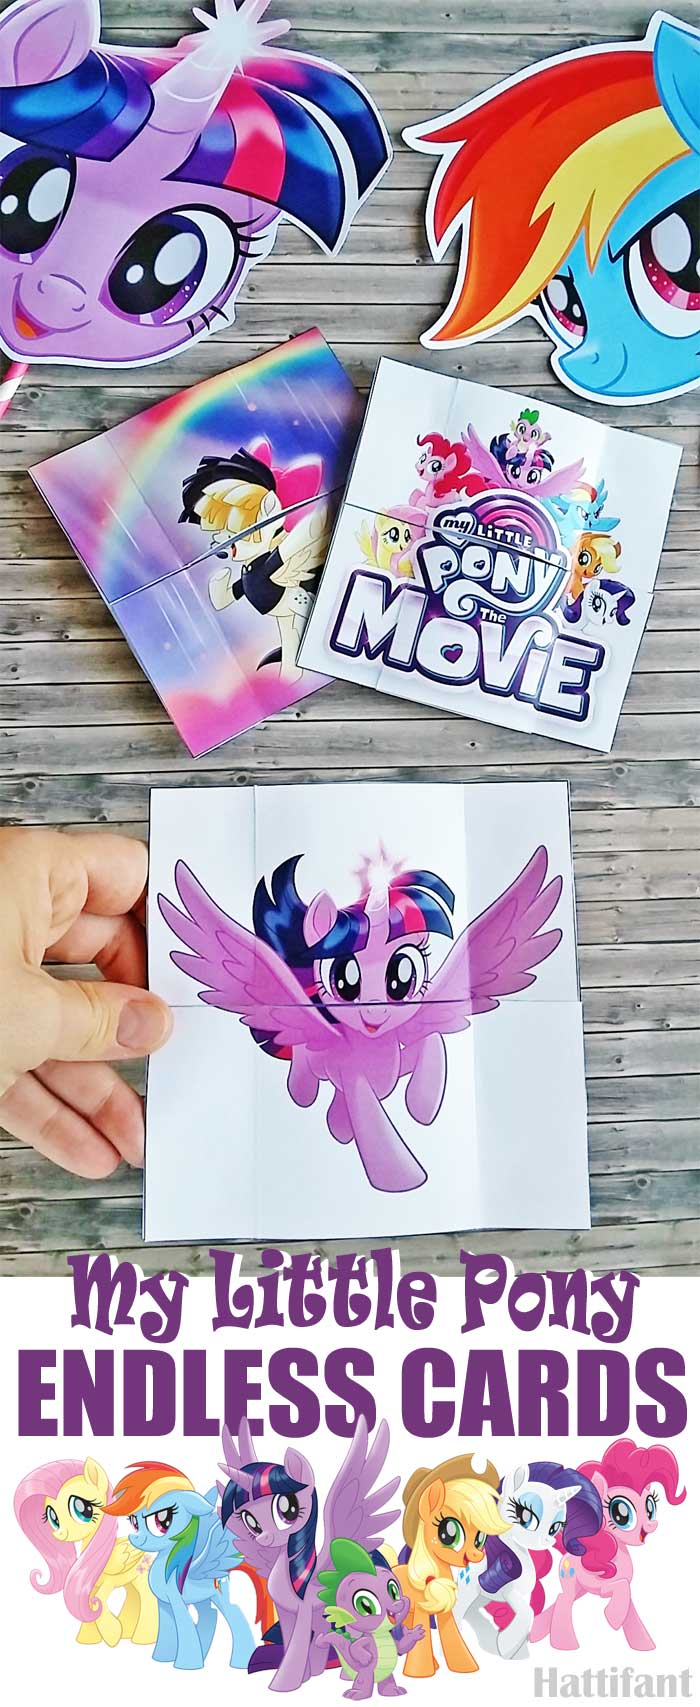 Hattifant's MLP My Little Pony Endless Cards to download free printables